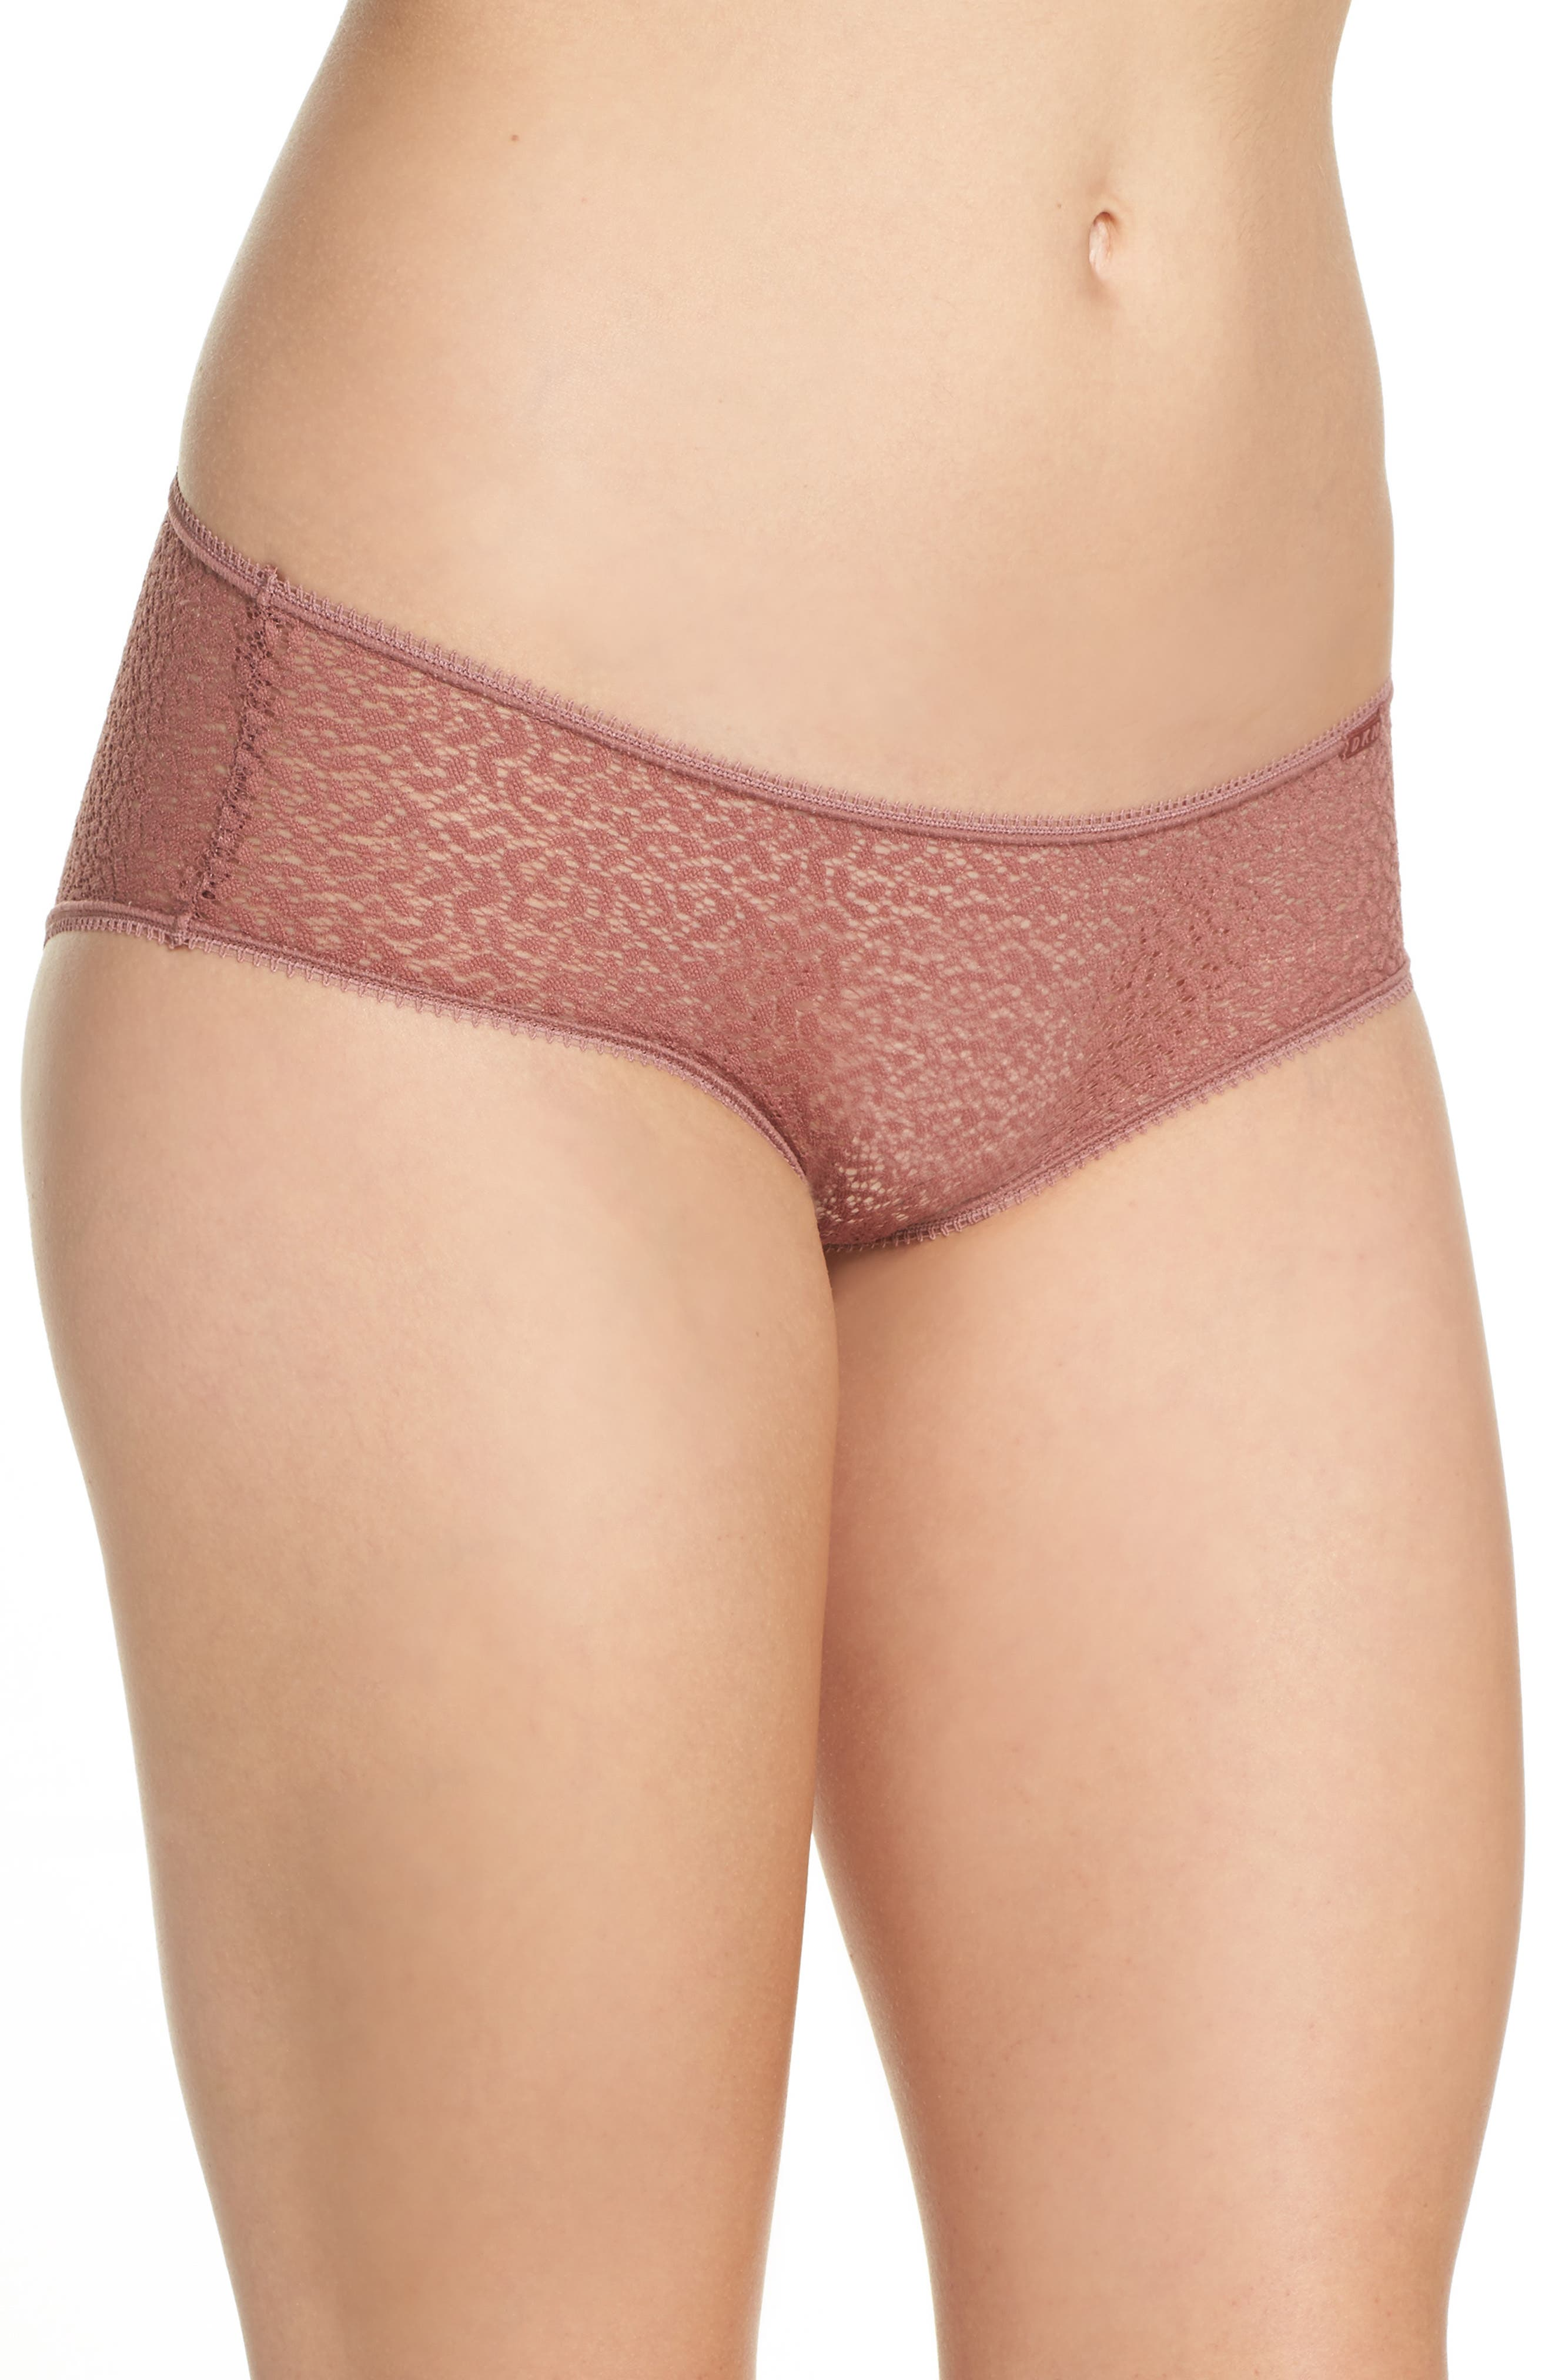 Modern Lace Hipster Panties,                             Alternate thumbnail 12, color,